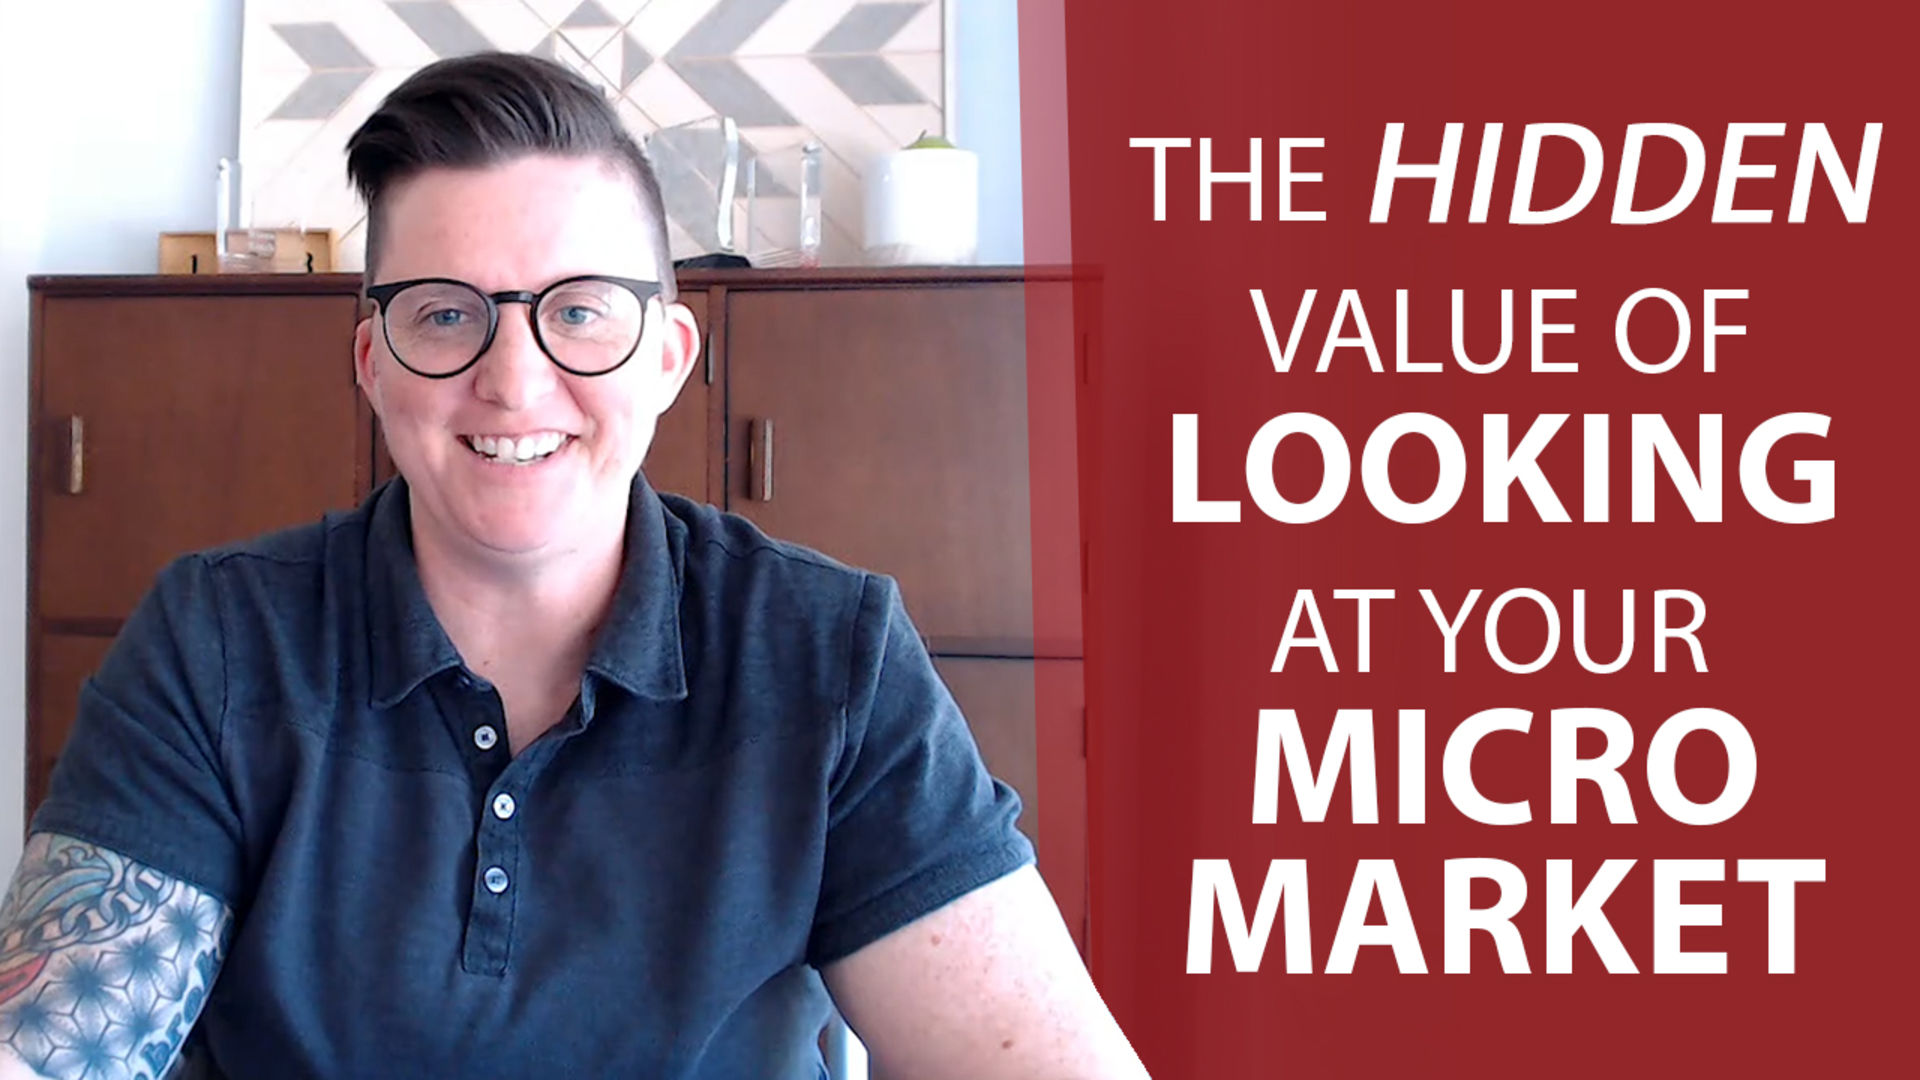 Find Out What's Really Happening by Looking at Your Micro Market